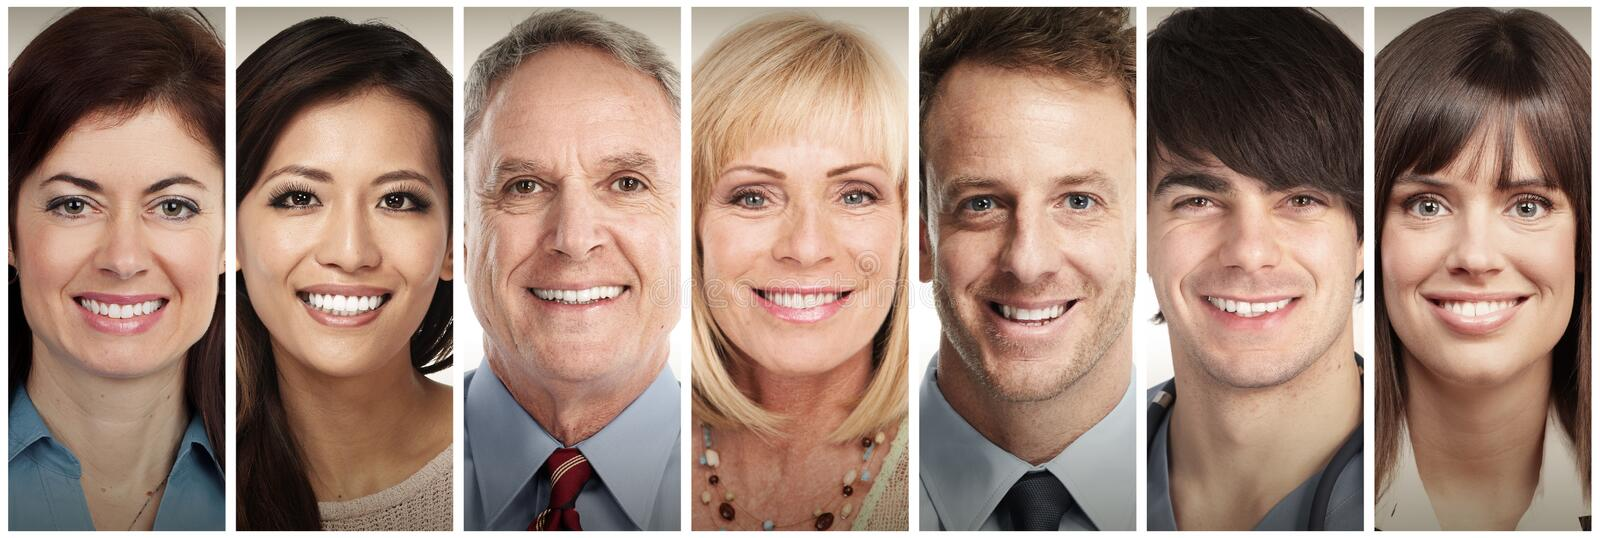 Happy smiling people faces stock photo